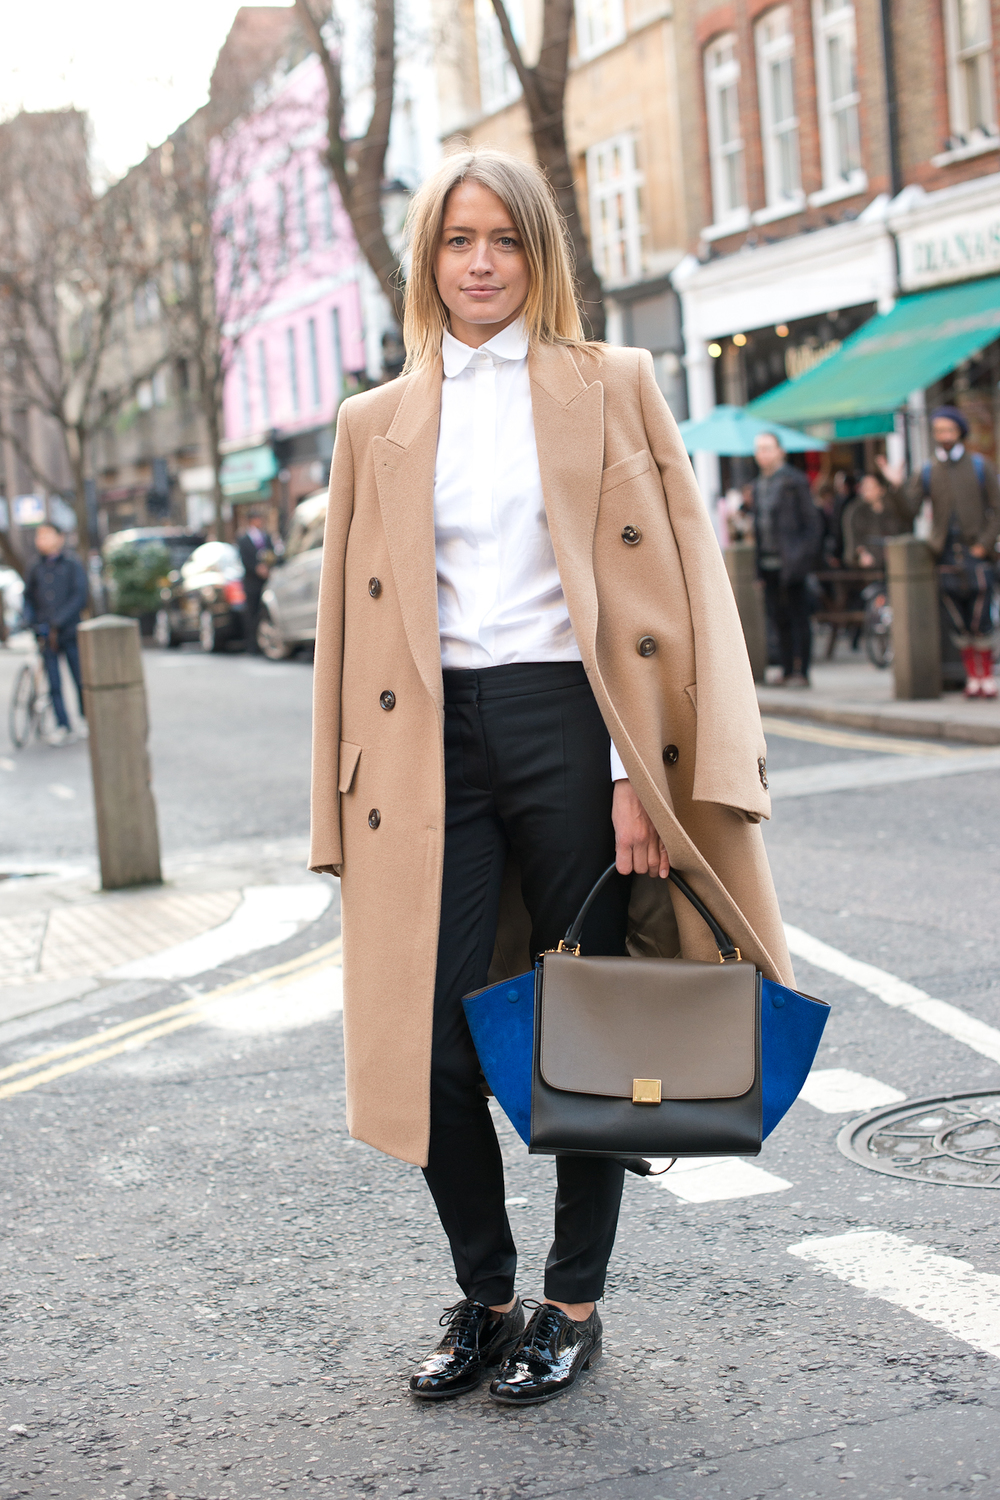 chicest-duos-classic-camel-coat-colorblocked-Céline.jpg